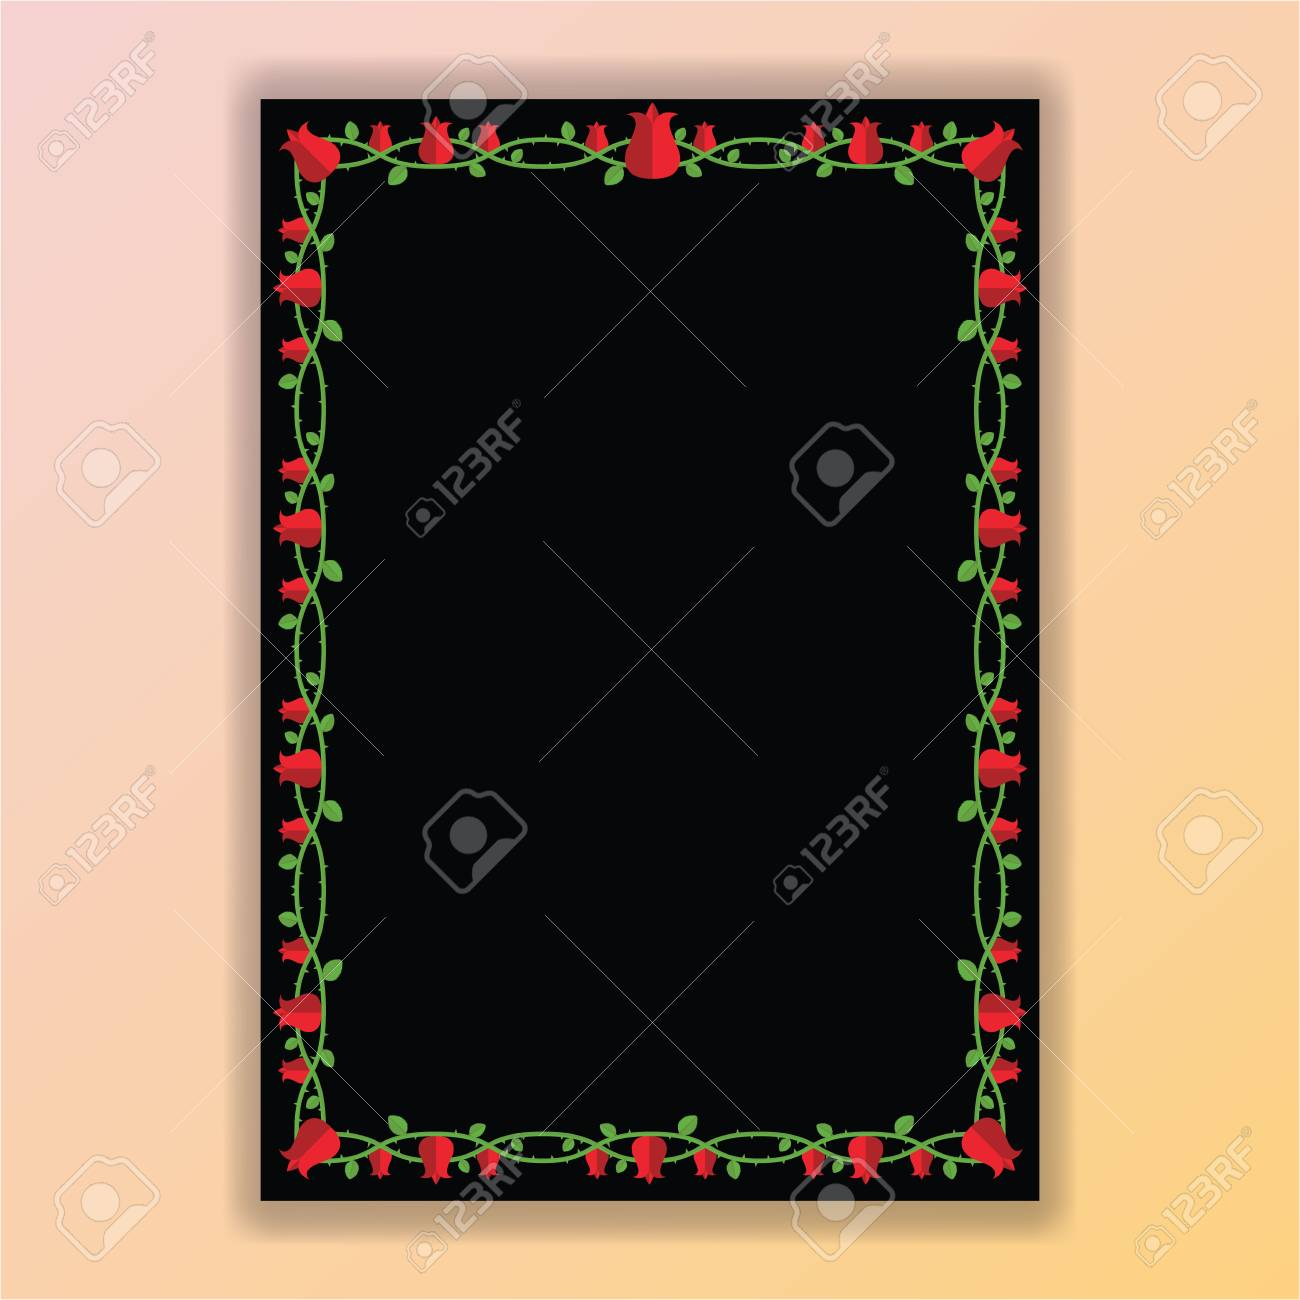 Floral Borders Red And Black Page Template For Web And Print